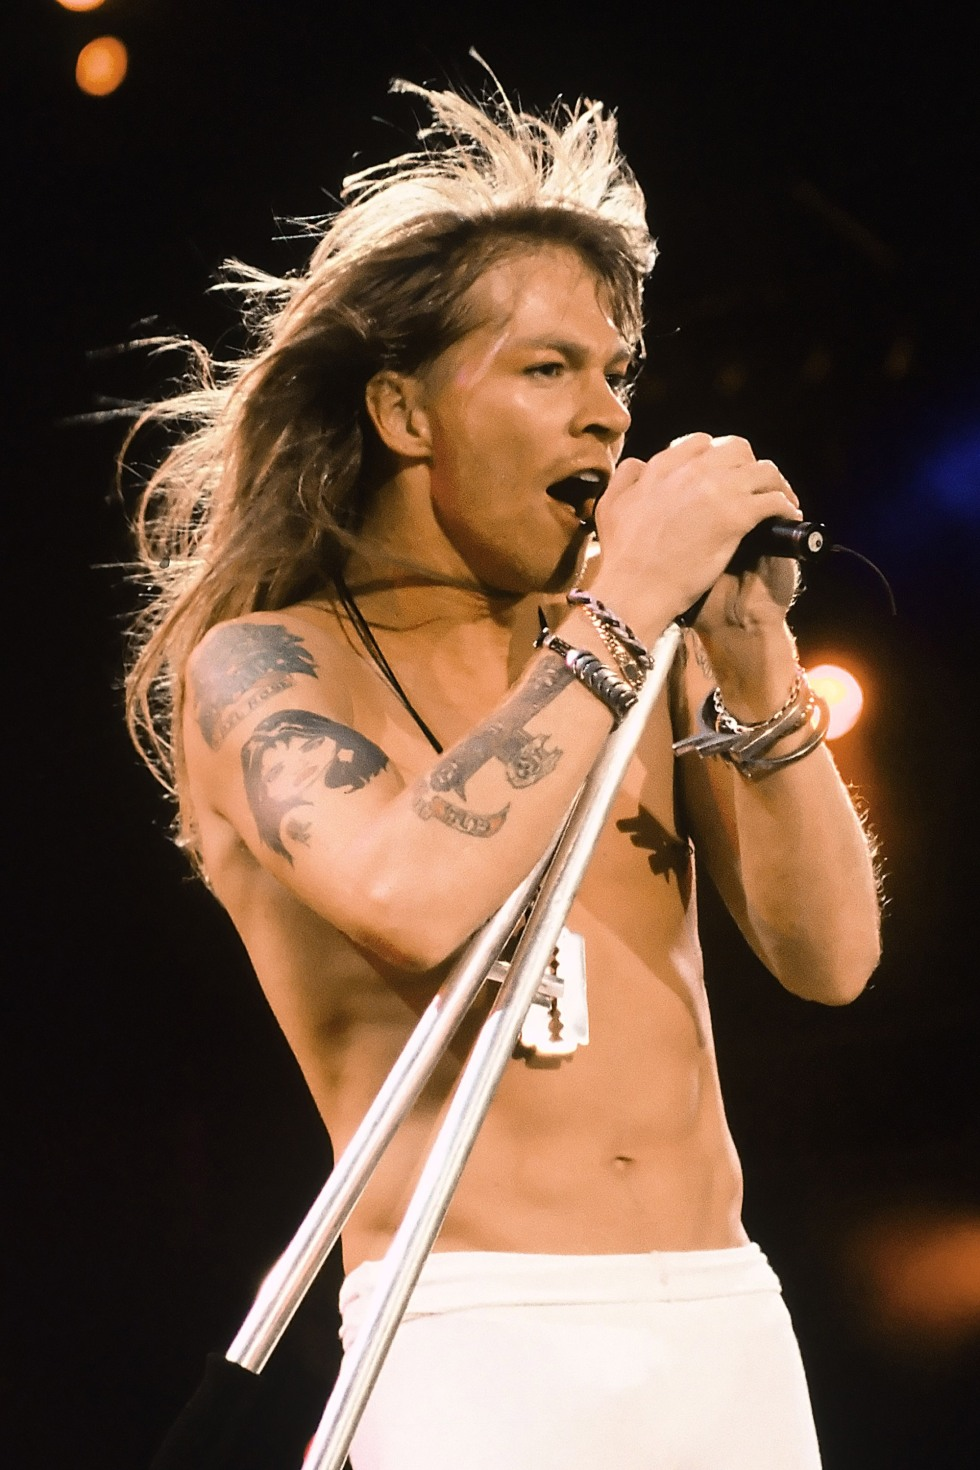 Axl Rose of Guns N' Roses, in their second performance at the Rock in Rio II Festival Guns N' Roses - Rock in Rio II Rio Rio de Janeiro,  Brazil January 15, 1991 Photo by George Chin/WireImage.com  To license this image (7719358), contact WireImage: U.S. +1-212-686-8900 / U.K. +44-207 659 2815 / Australia +61-2-8262-9222 / Japan: +81-3-5464-7020 +1 212-686-8901 (fax) info@wireimage.com (e-mail) www.wireimage.com (web site)